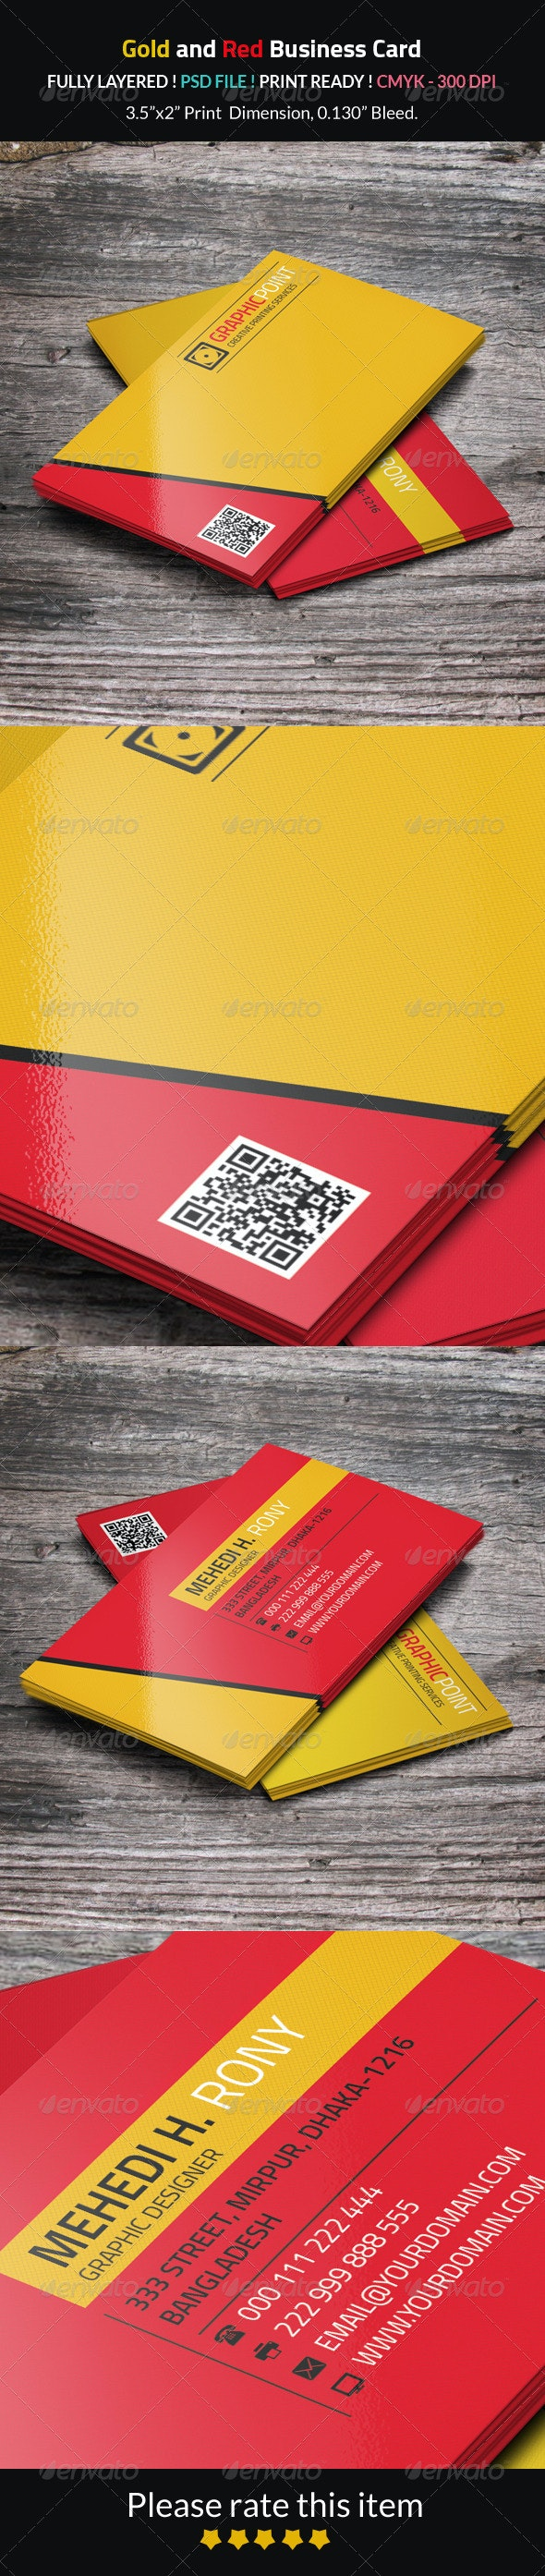 Gold and Red Business Card - Corporate Business Cards